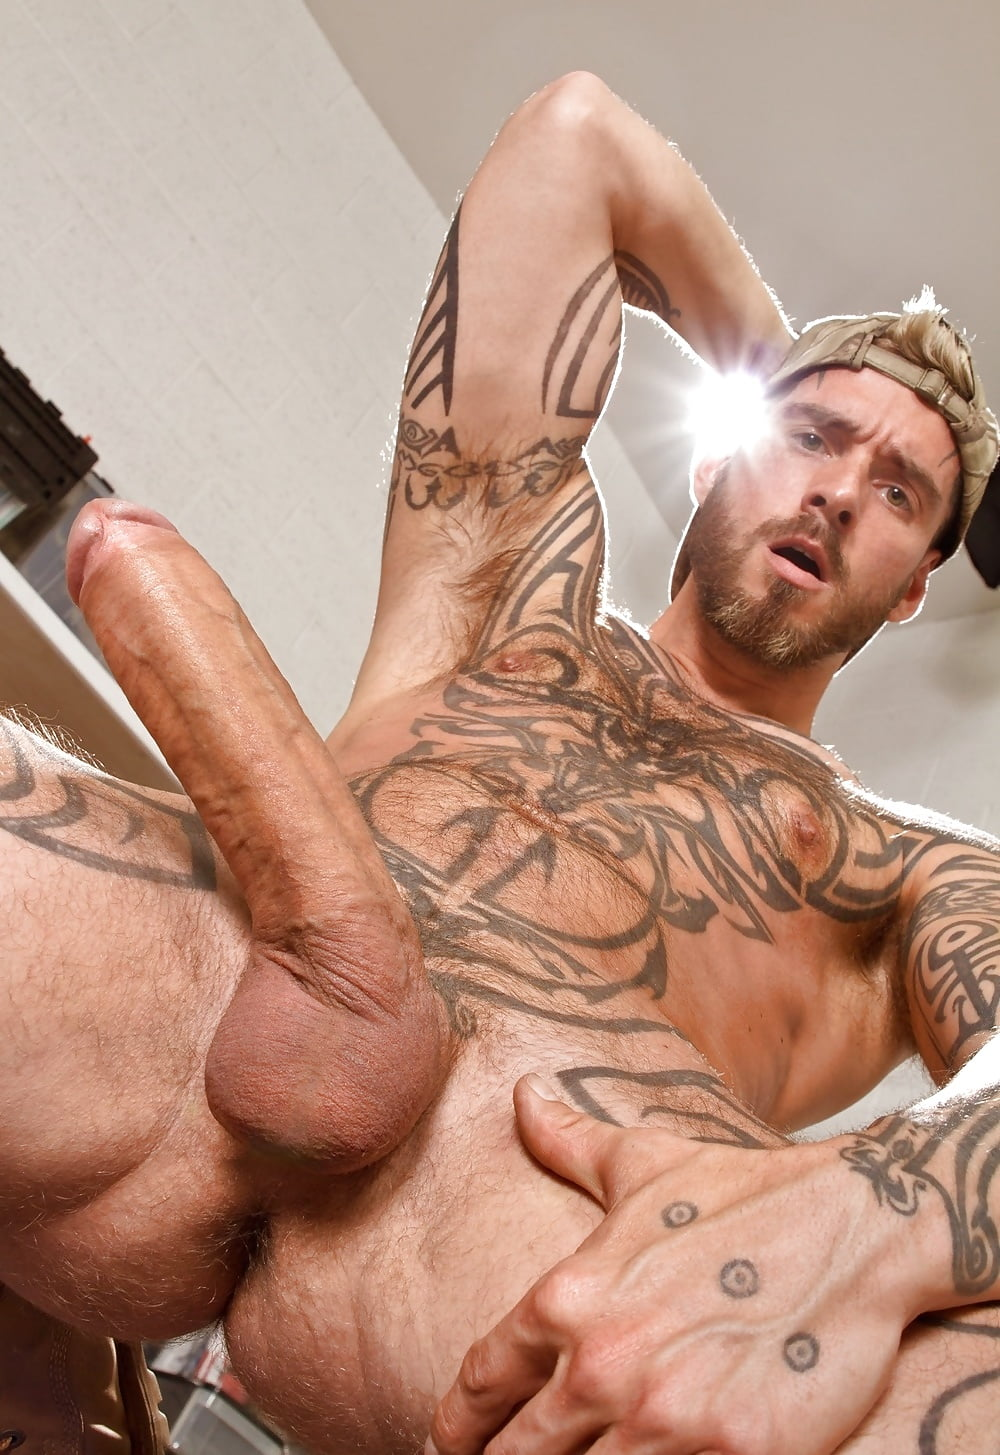 Logan mccree naked picture — 4